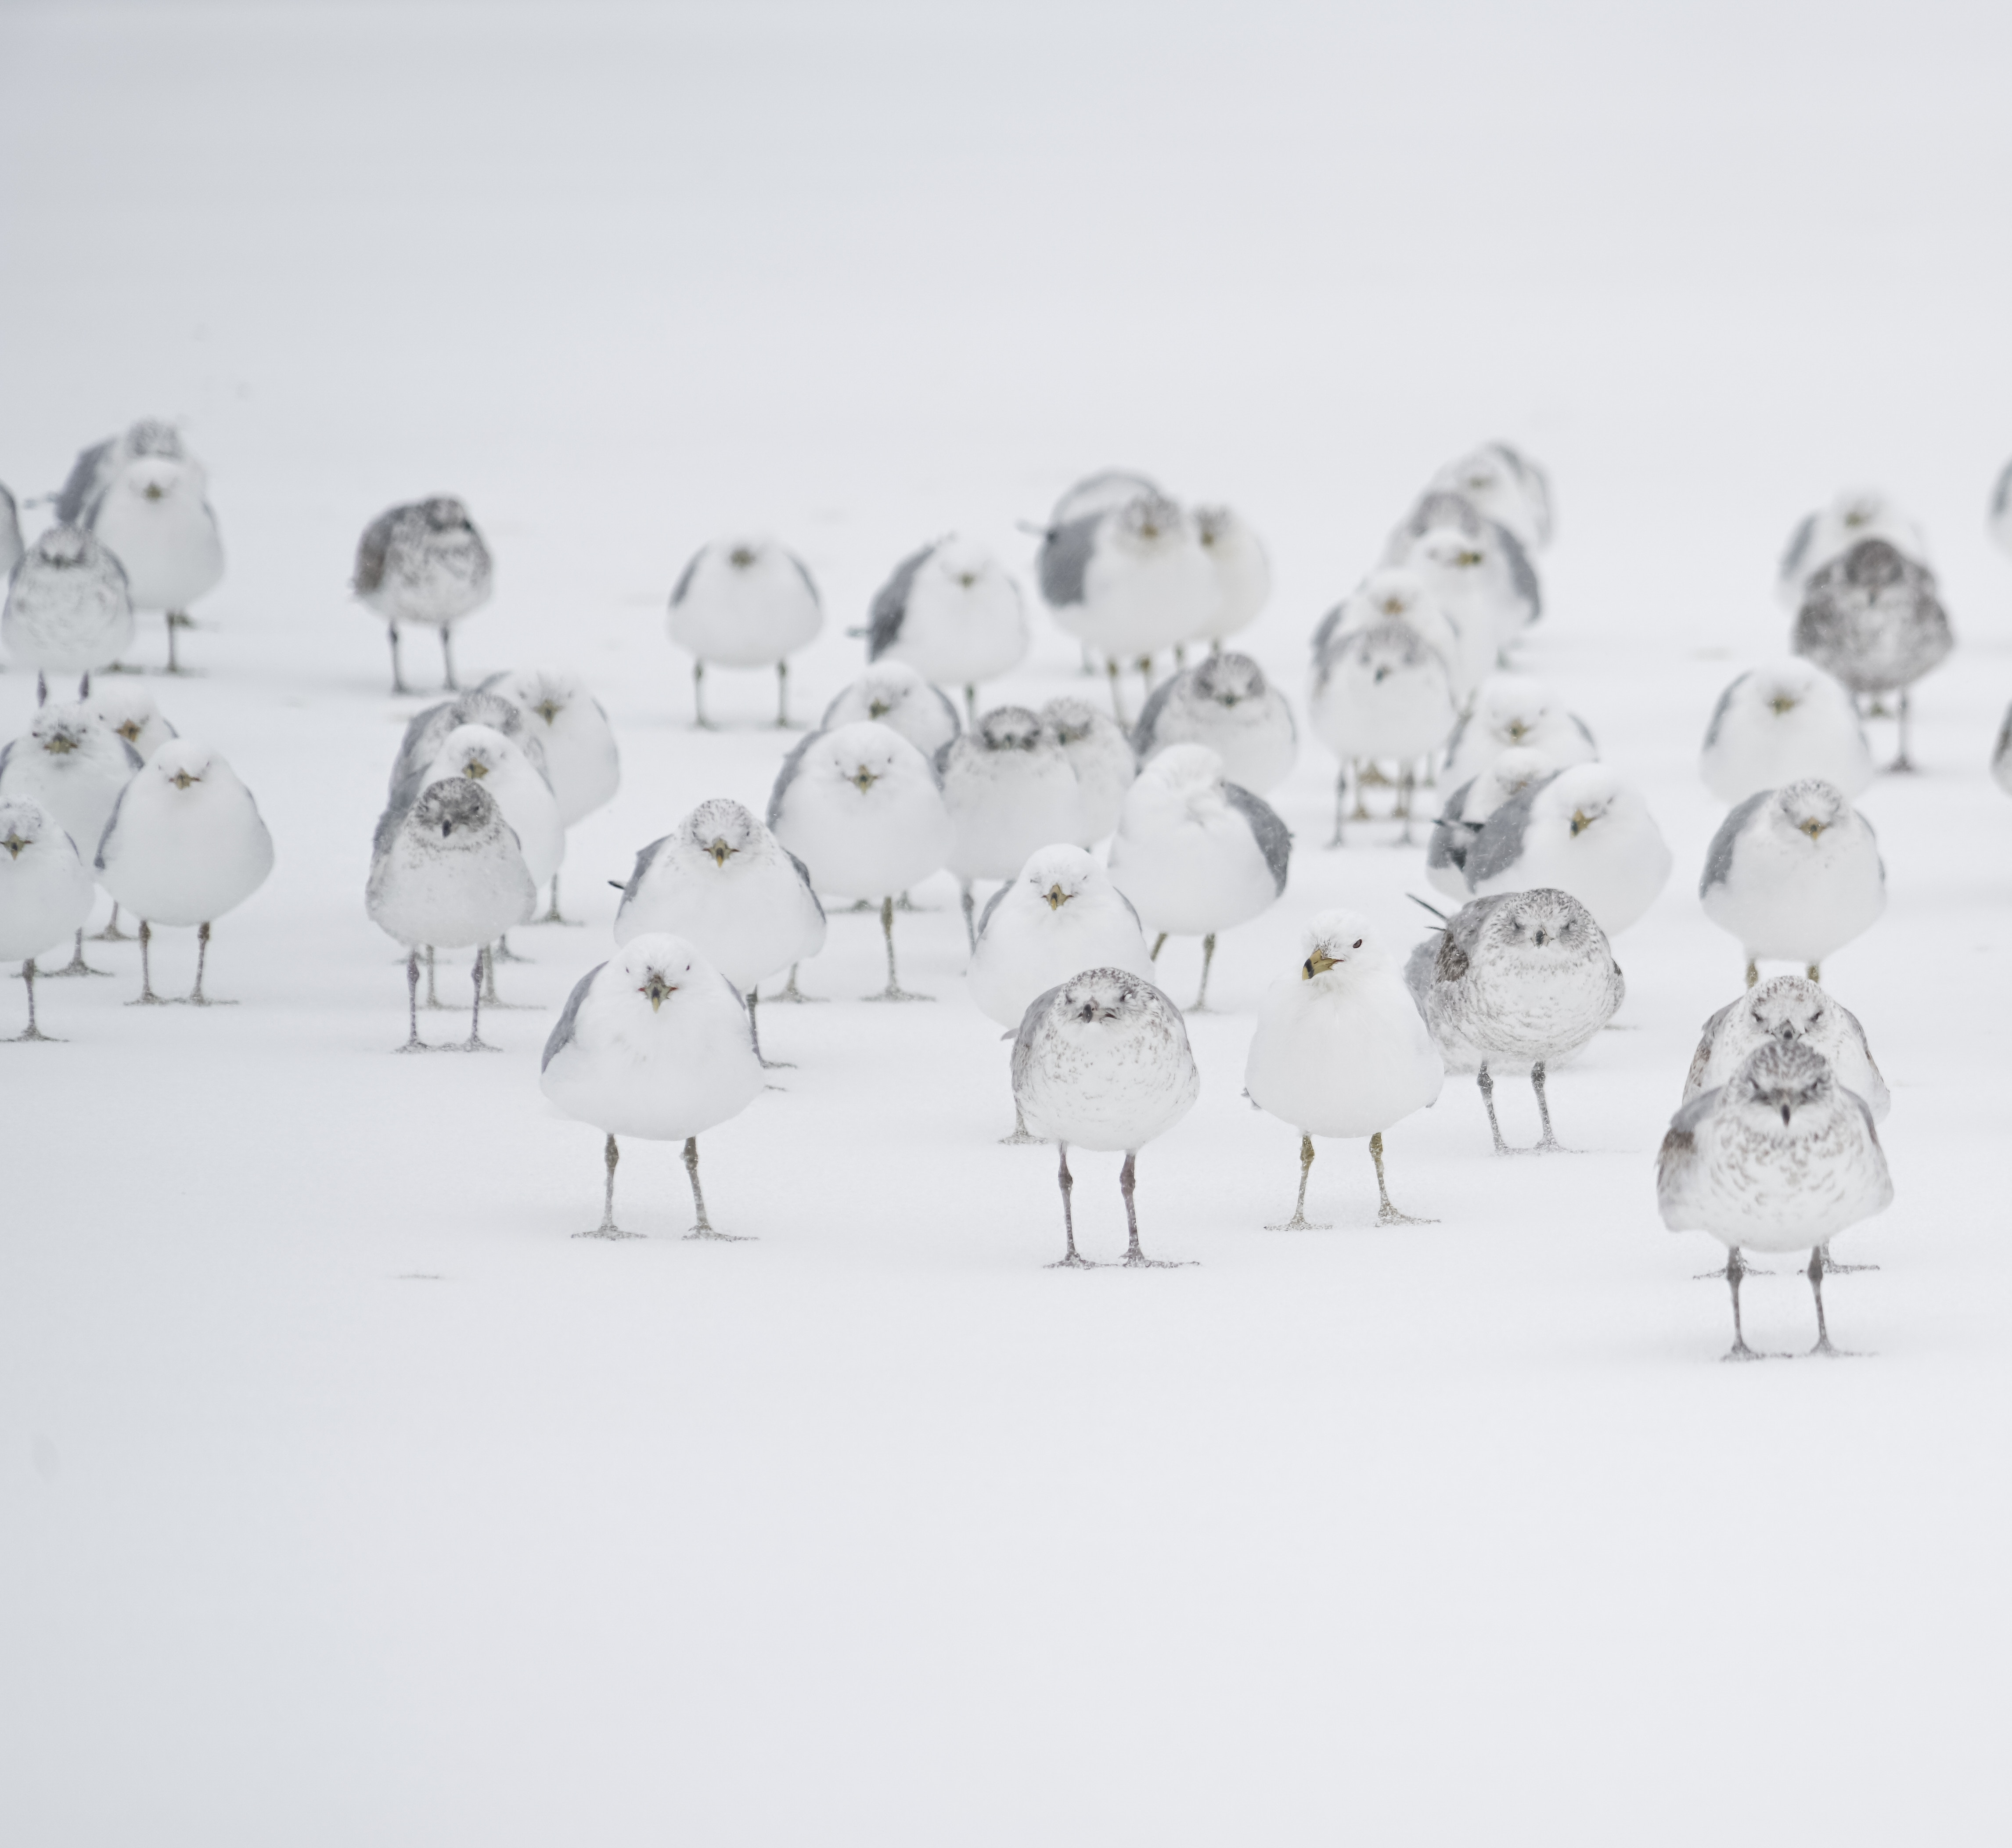 A flock of white birds standing in the snow.